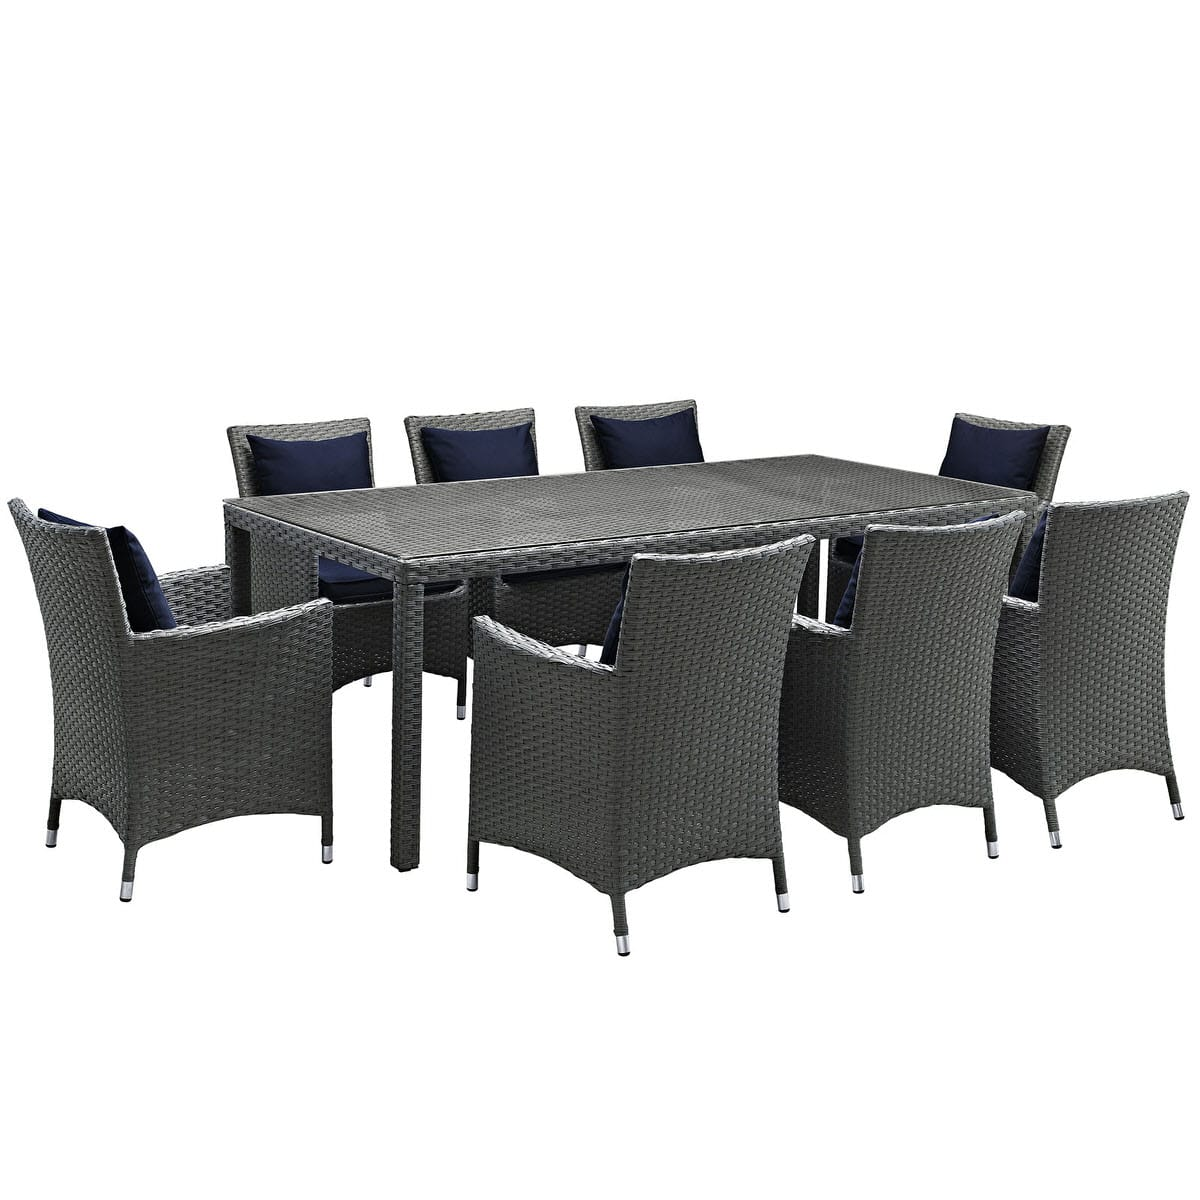 Sojourn 9 Piece Outdoor Patio Sunbrella Dining Set Canvas Navy by ...